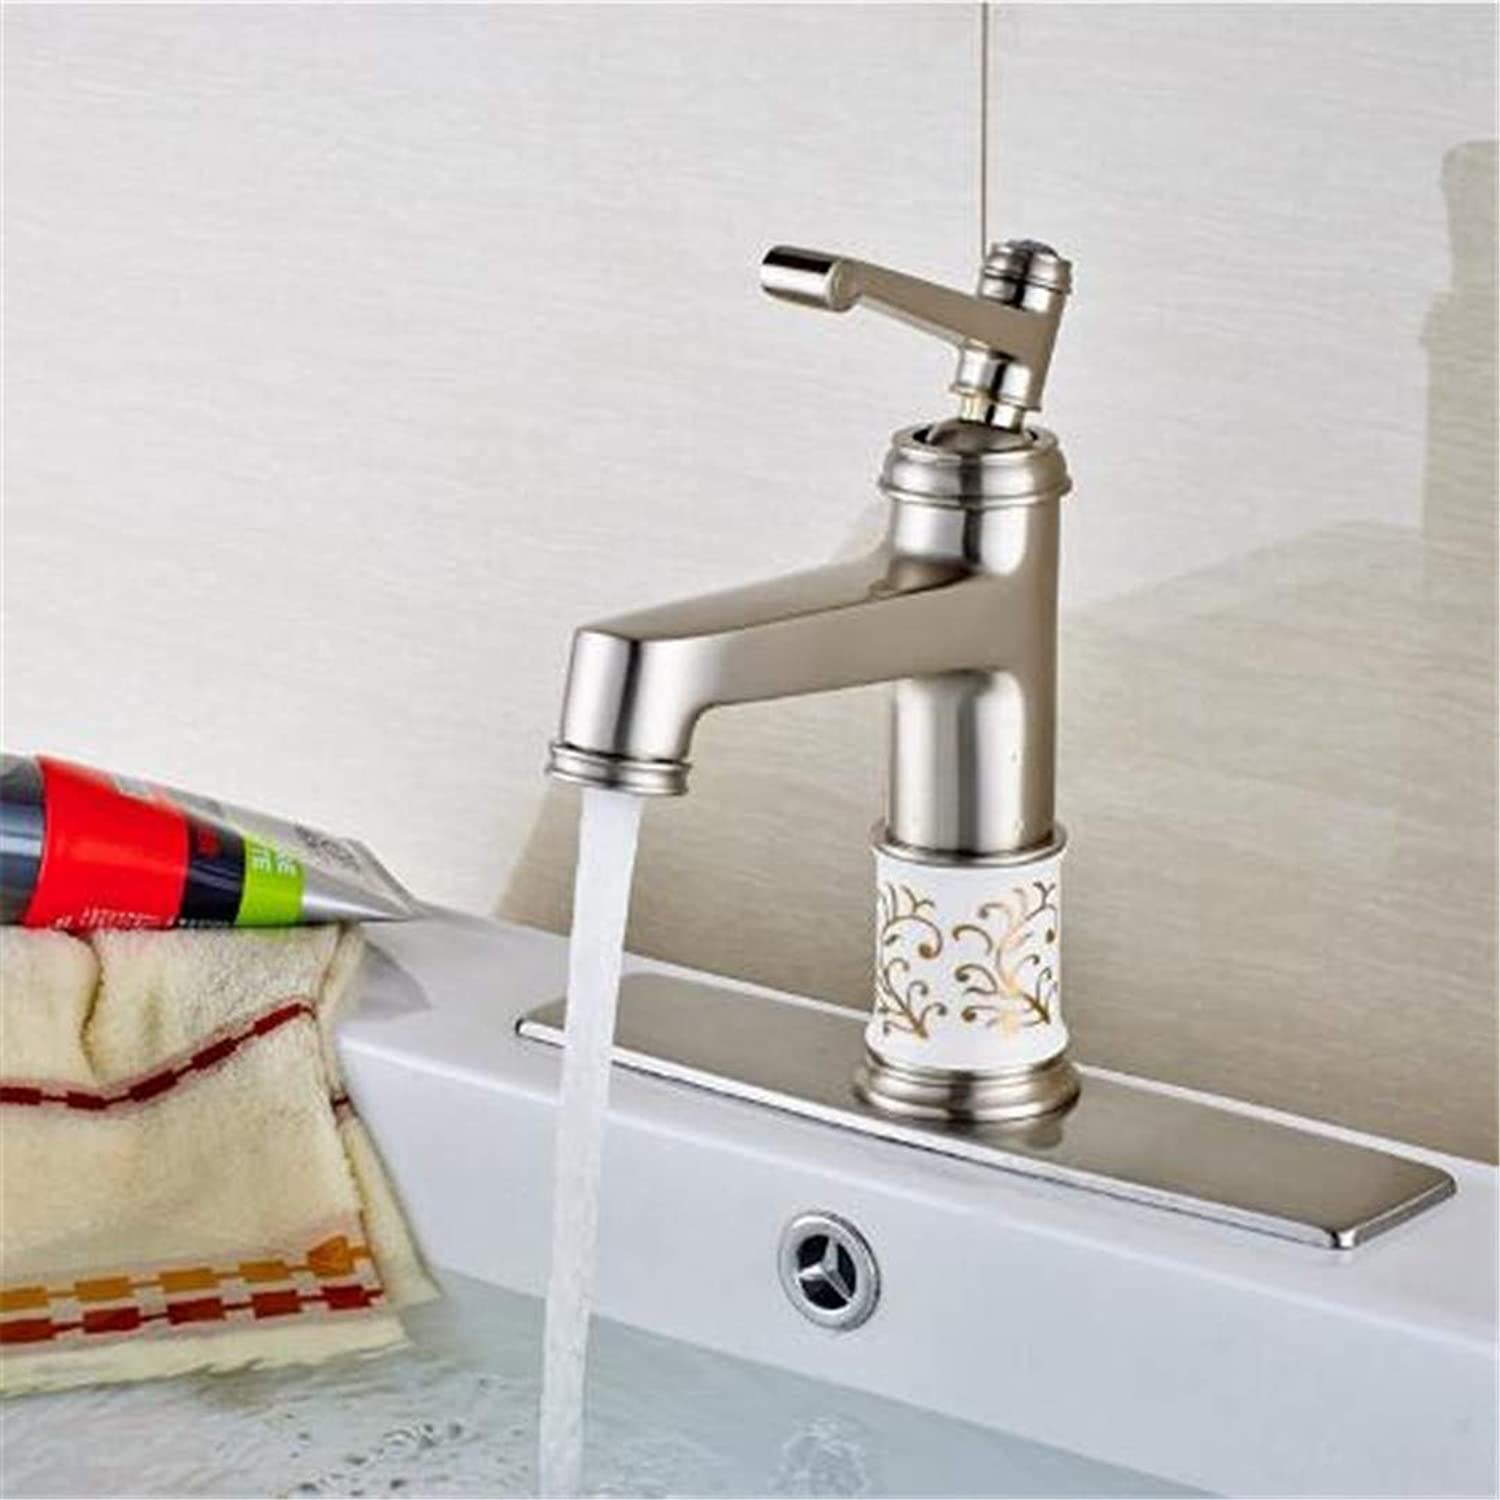 Oudan Bathroom Basin Faucet Kitchen Faucet Hot and Cold Taps Crossdeck Mount Brushed Nickel Ceramic Bath Faucet Mixer Tap with Square Cover Plate (color   -, Size   -)